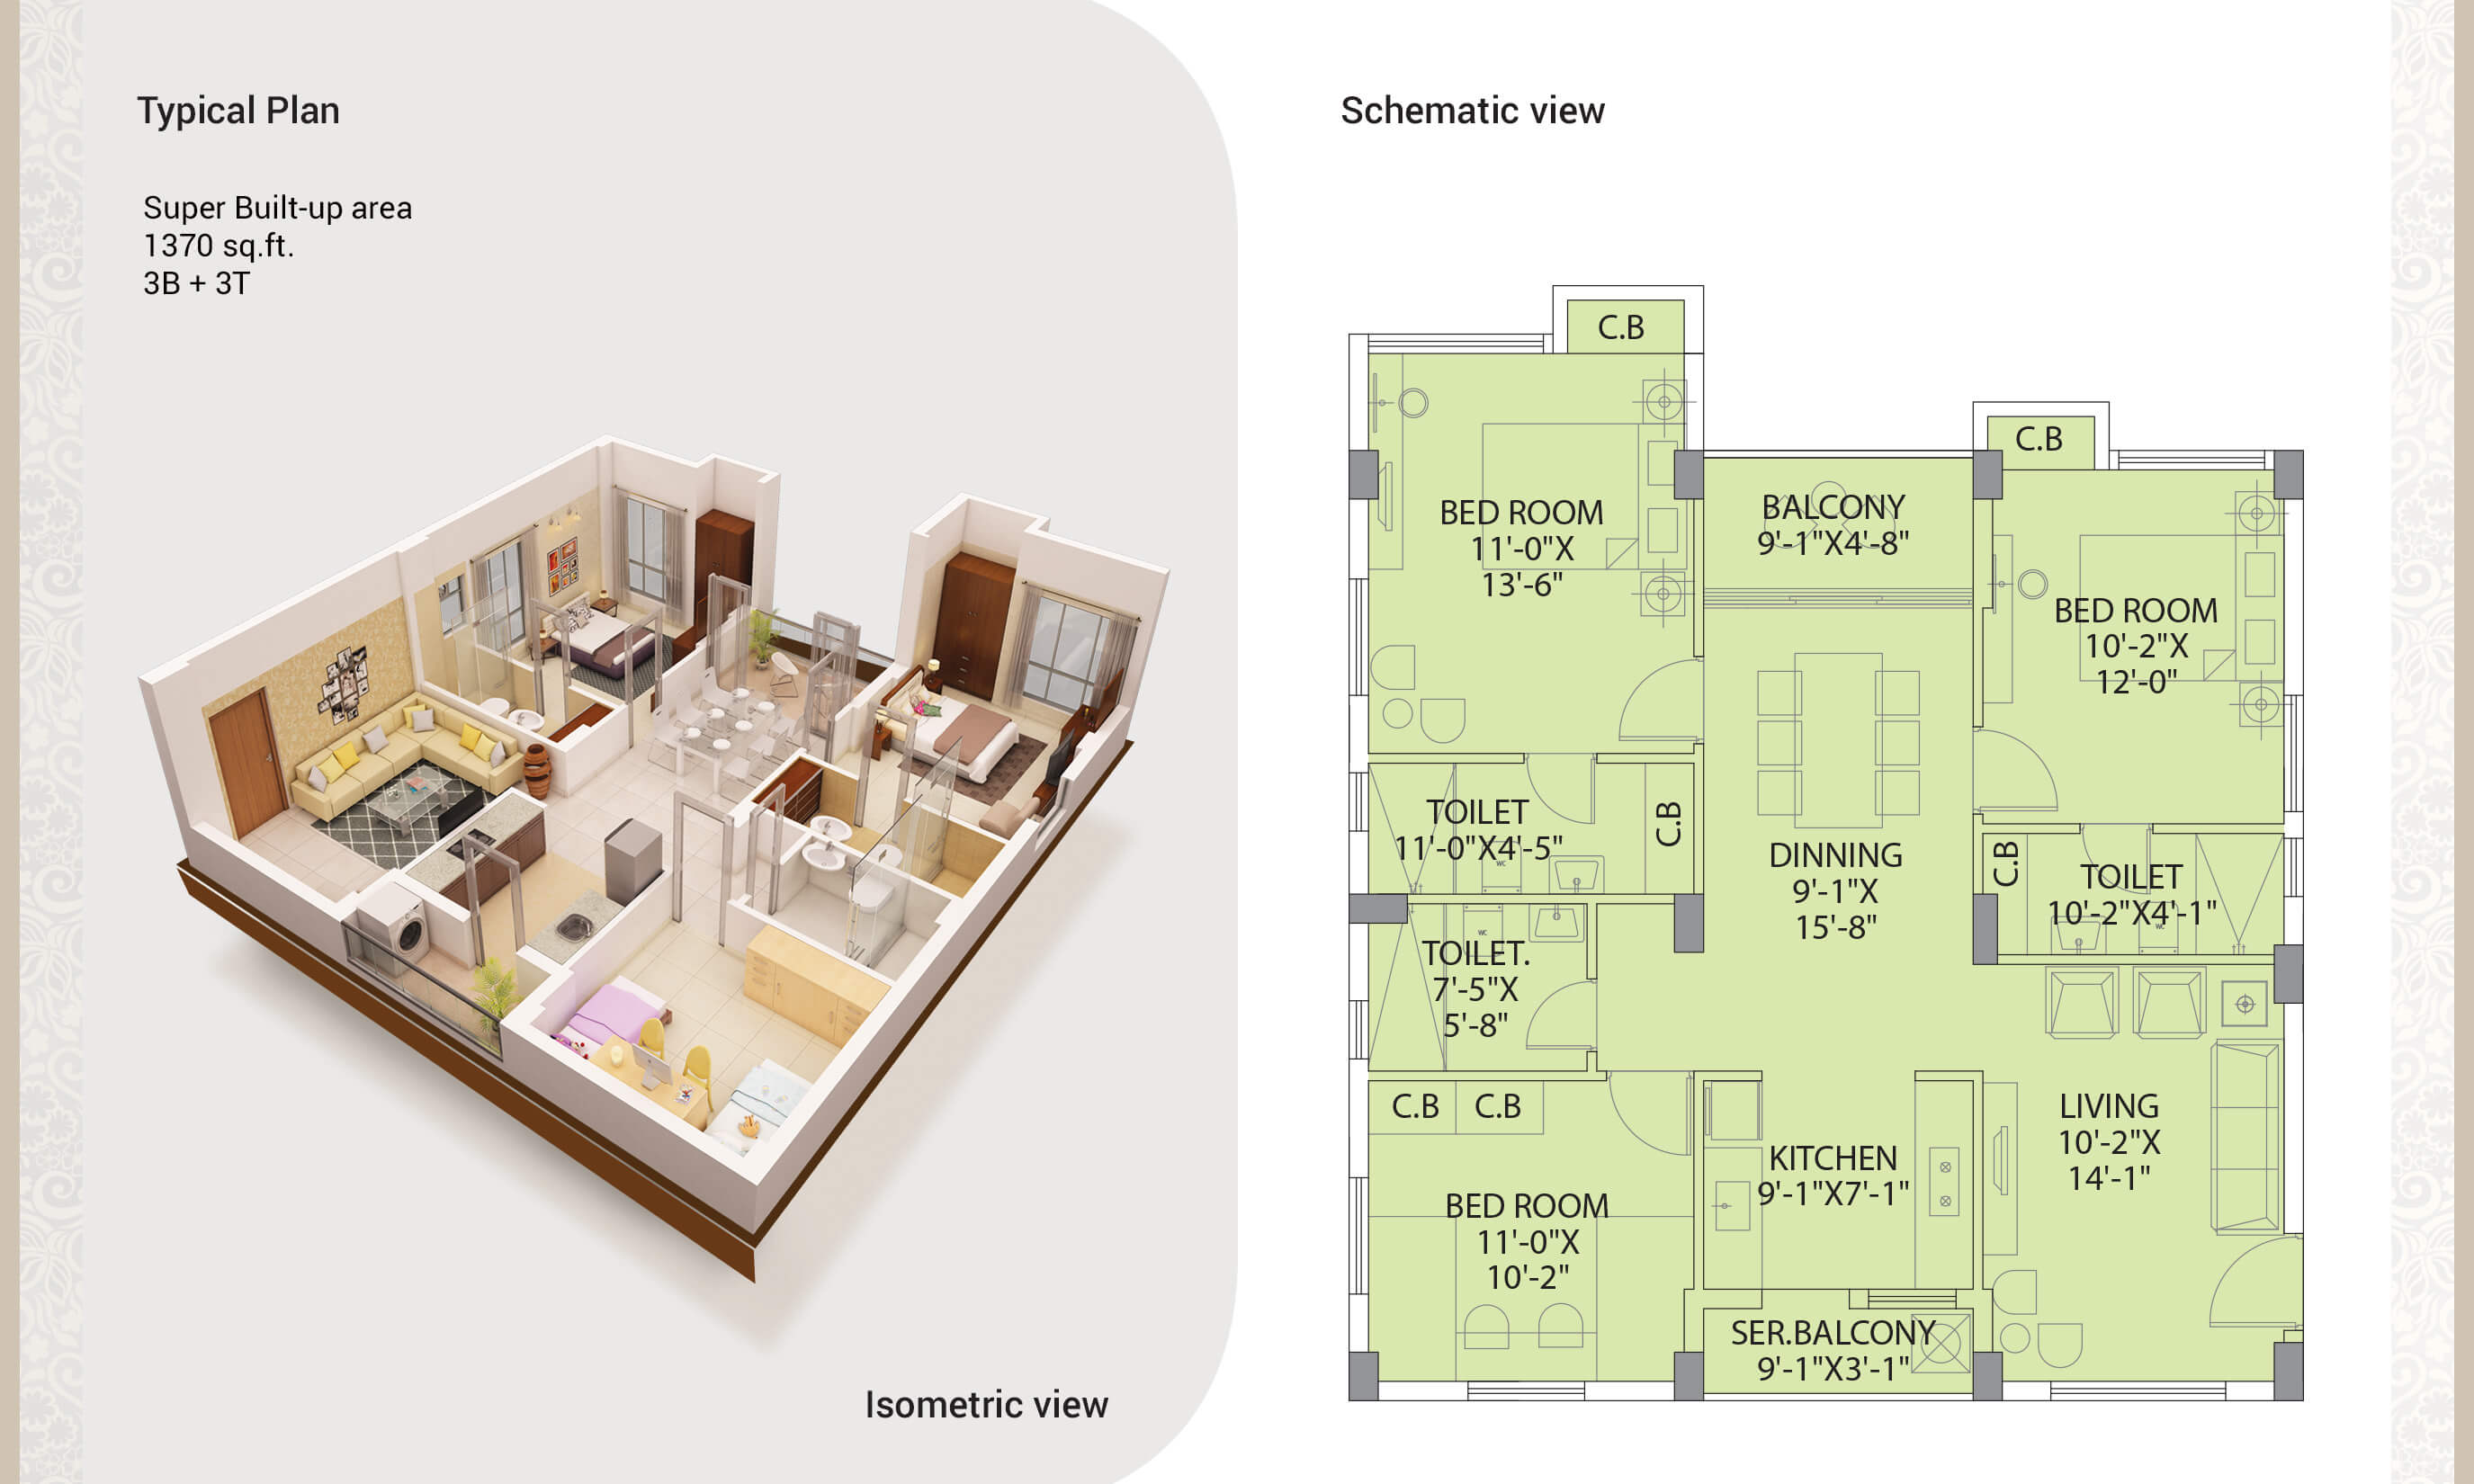 dtc southern heights apartment 3bhk 1370sqft 1